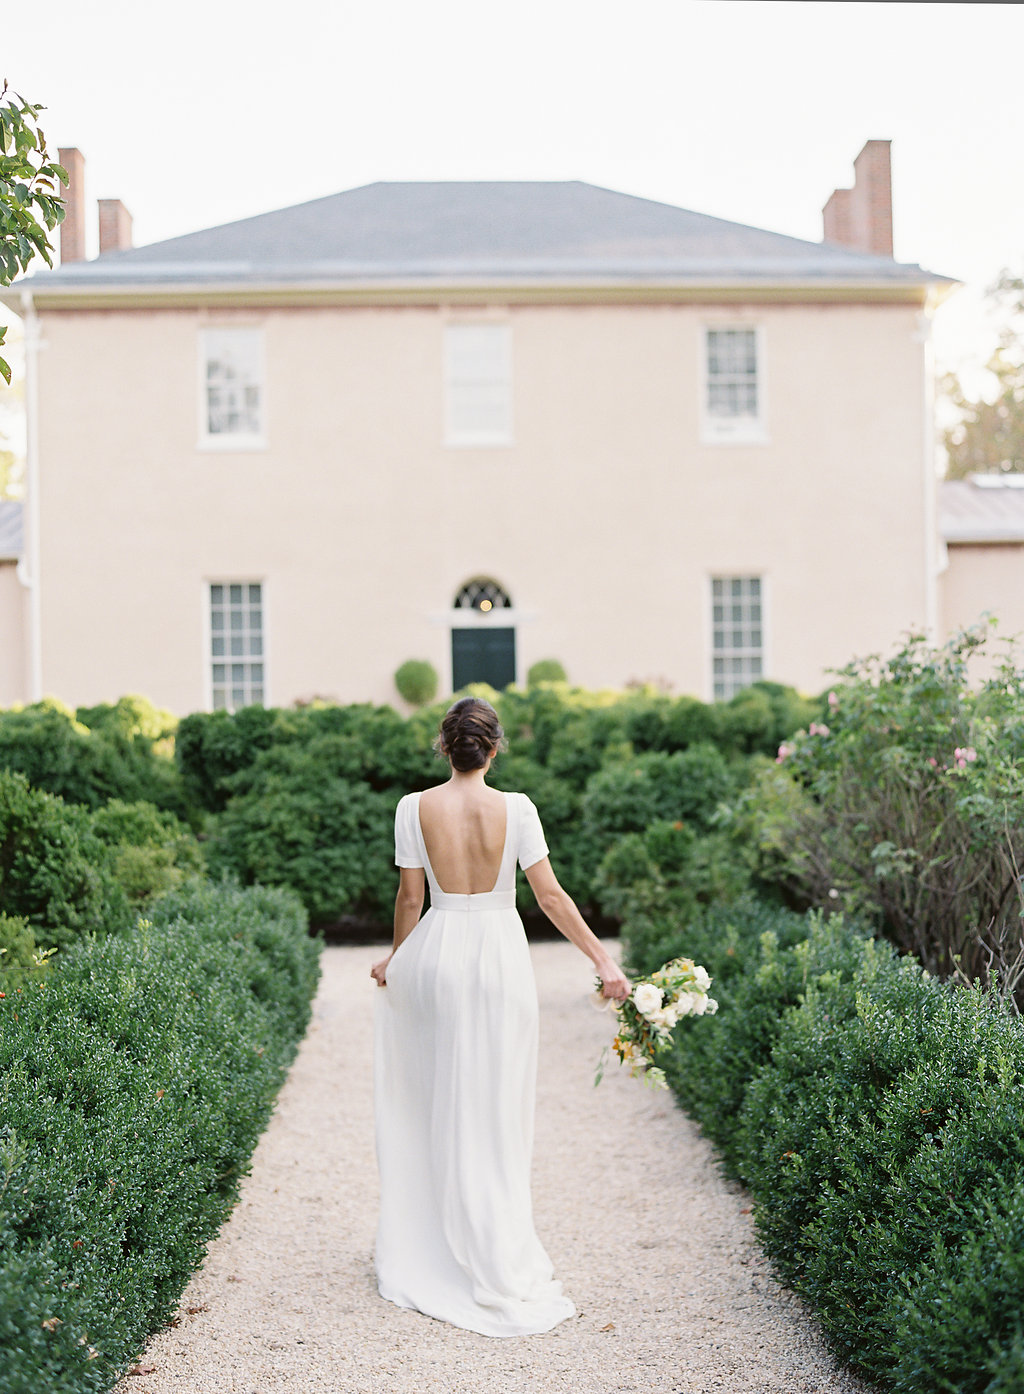 French Inspired Fall Wedding with Fine Art Destination Wedding Planner East Made Event Company and DC Film Photographer Vicki Grafton Photography at Tudor Place in Washington DC-103.jpg